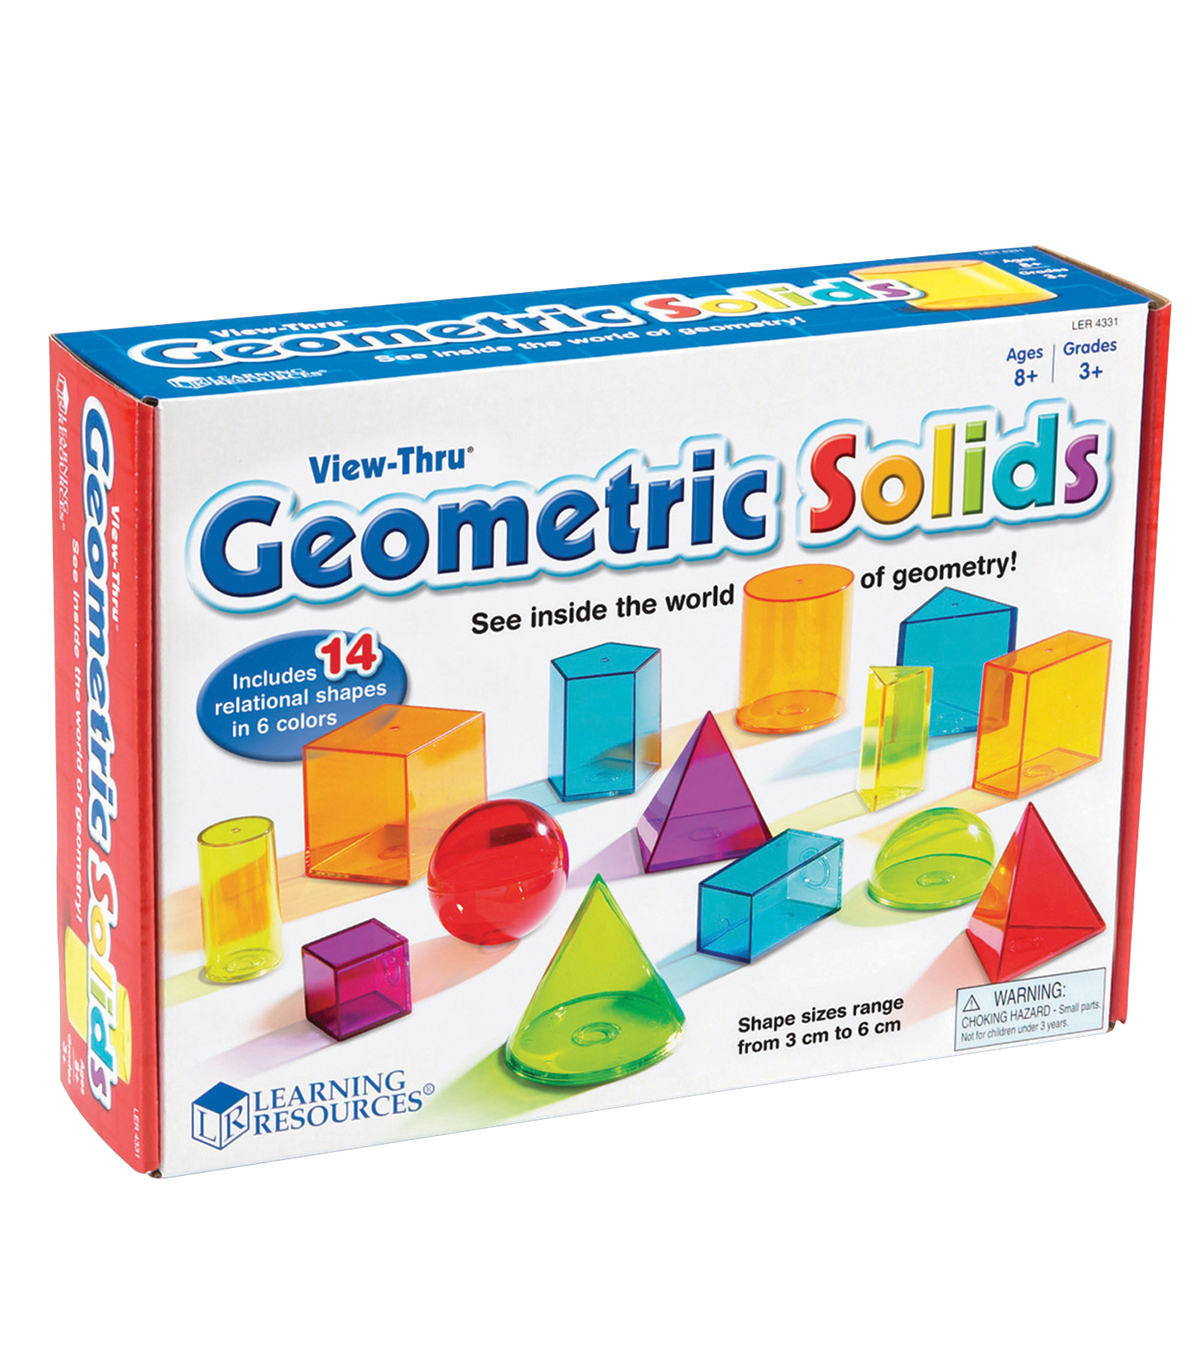 Learning Resources View-Thru Geometric Solids, 14pcs